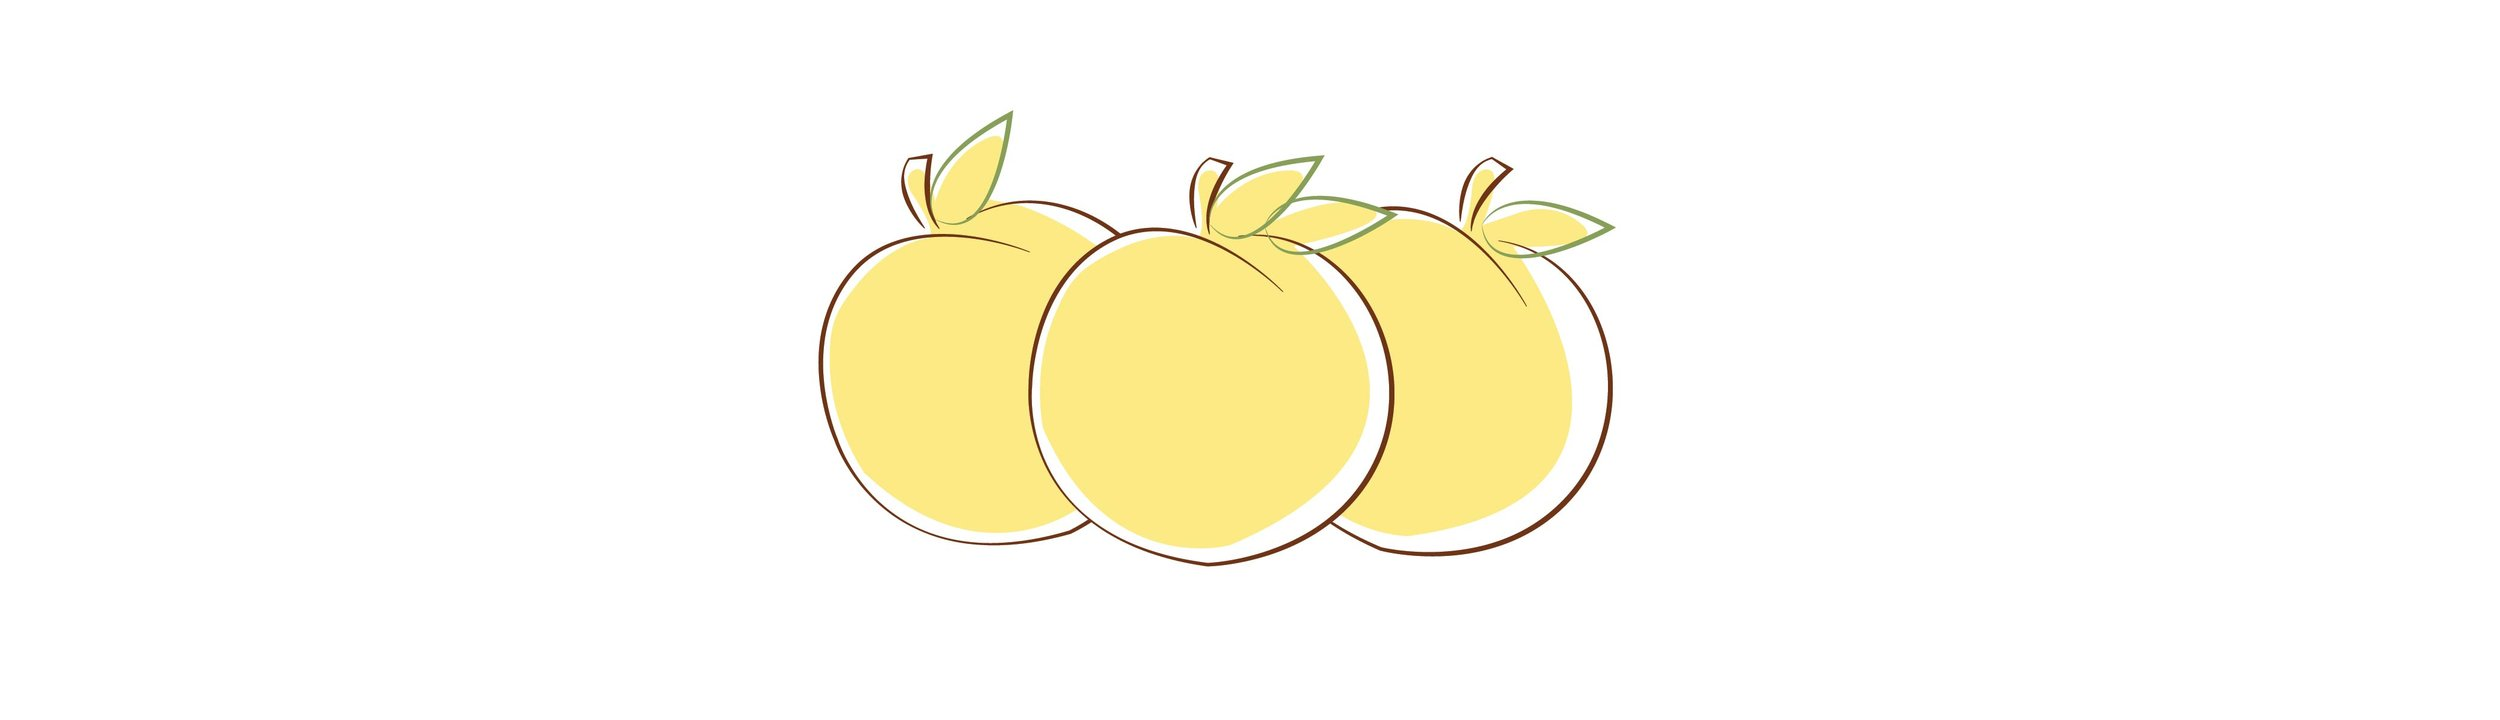 An illustrated image of a group of three peaches with the GFMA logo colors. Yellow, brown, green.